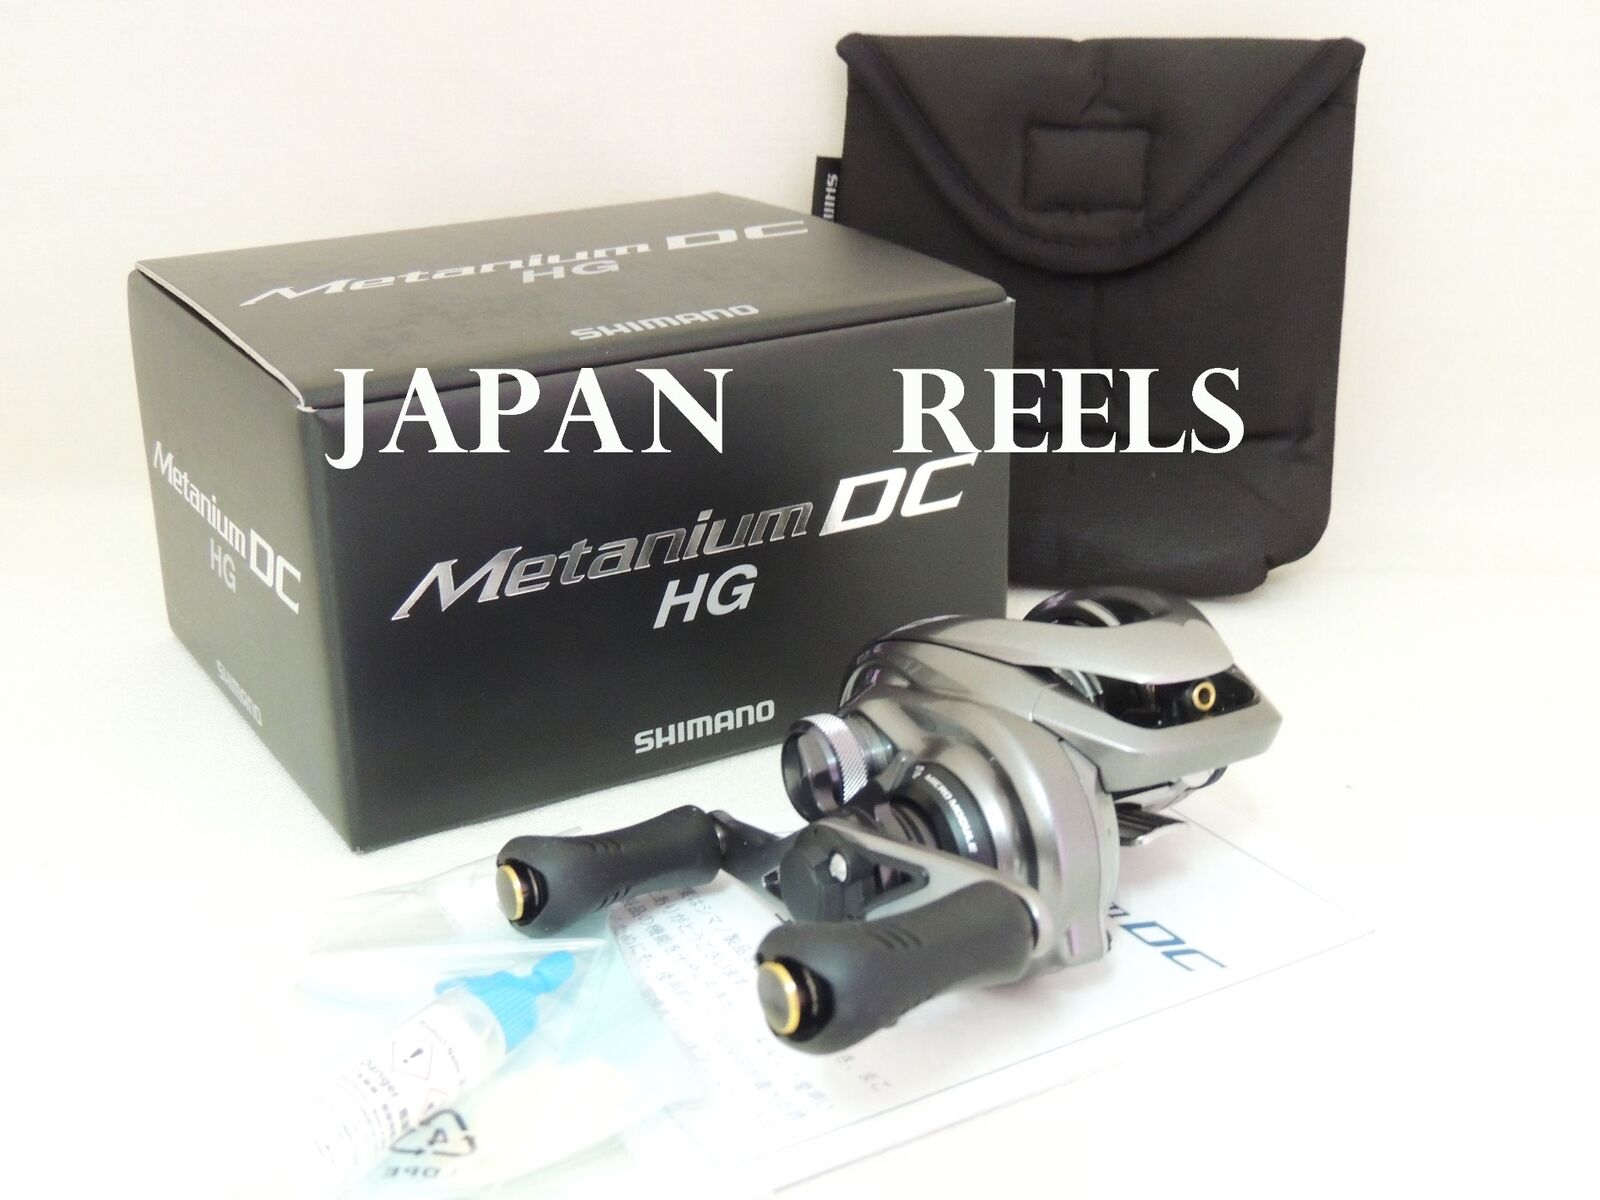 NEW SHIMANO 15 METANIUM DC HG RIGHT HAND (7.4 1) JAPAN 1-3 DAYS FAST DELIVERY